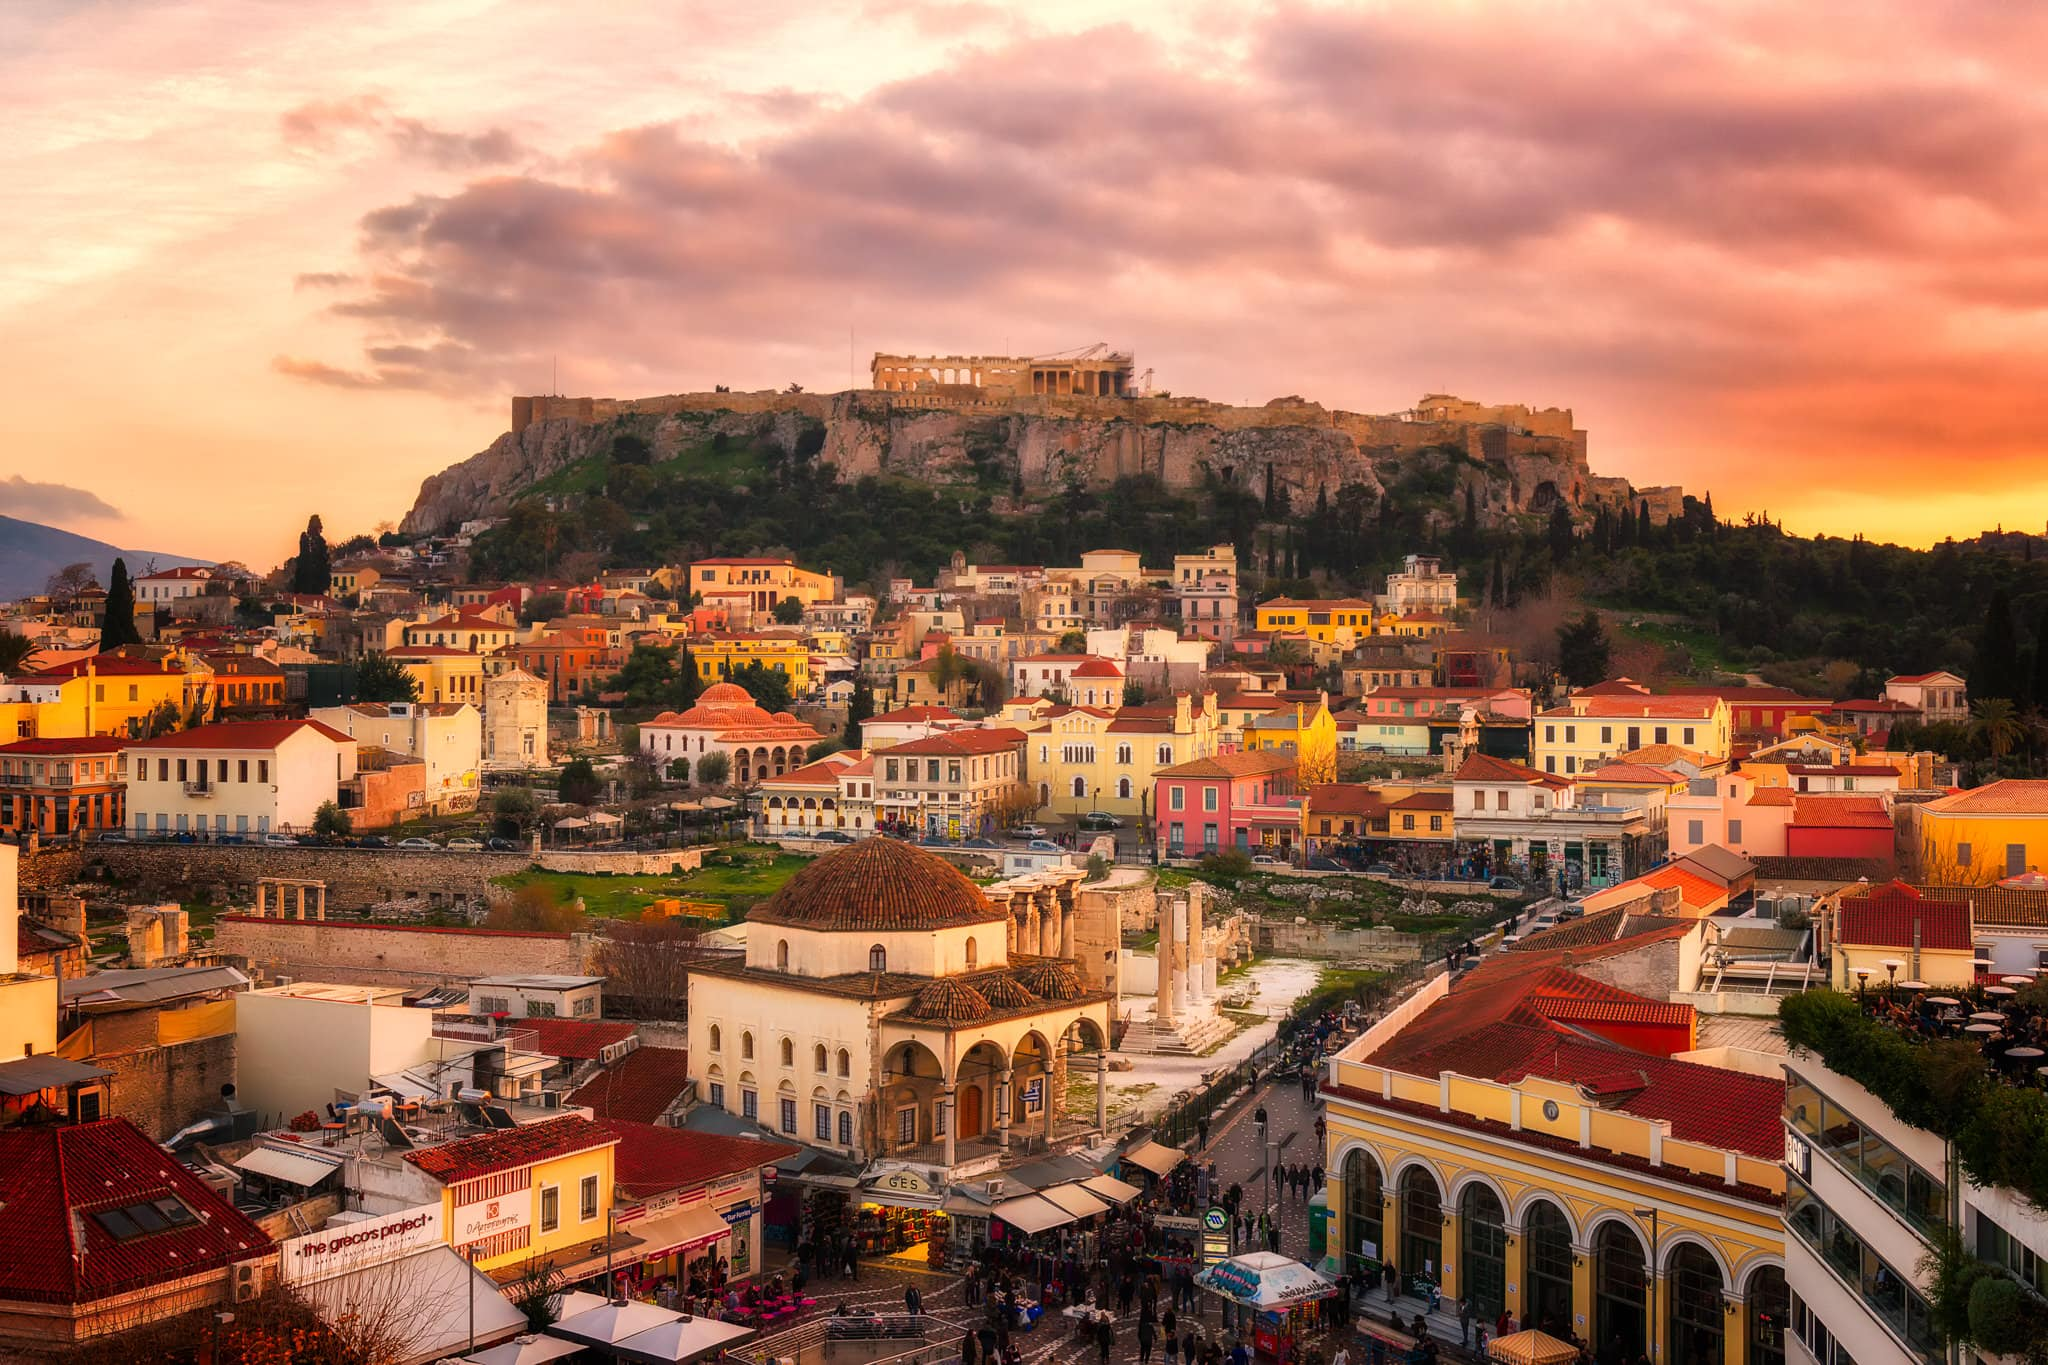 Picturesque panorama view of Monastiraki area in Athens, captured in the evening.